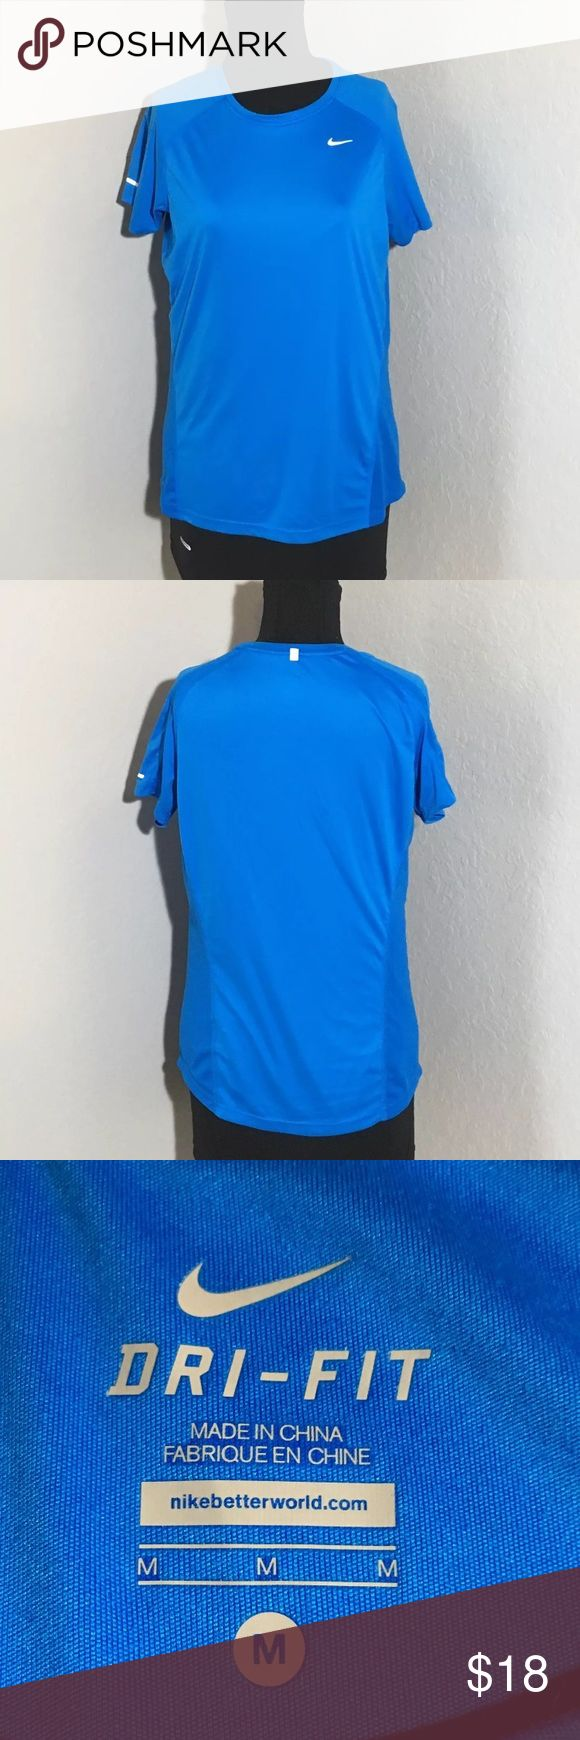 "Nike Dri Fit Blue Short Sleeve Workout T Shirt M Women's blue Nike dri fit short sleeve workout t Shirt. Size M 19"" armpit to armpit, 25"" shoulder to hem. Excellent condition no flaws Nike Tops Tees - Short Sleeve"